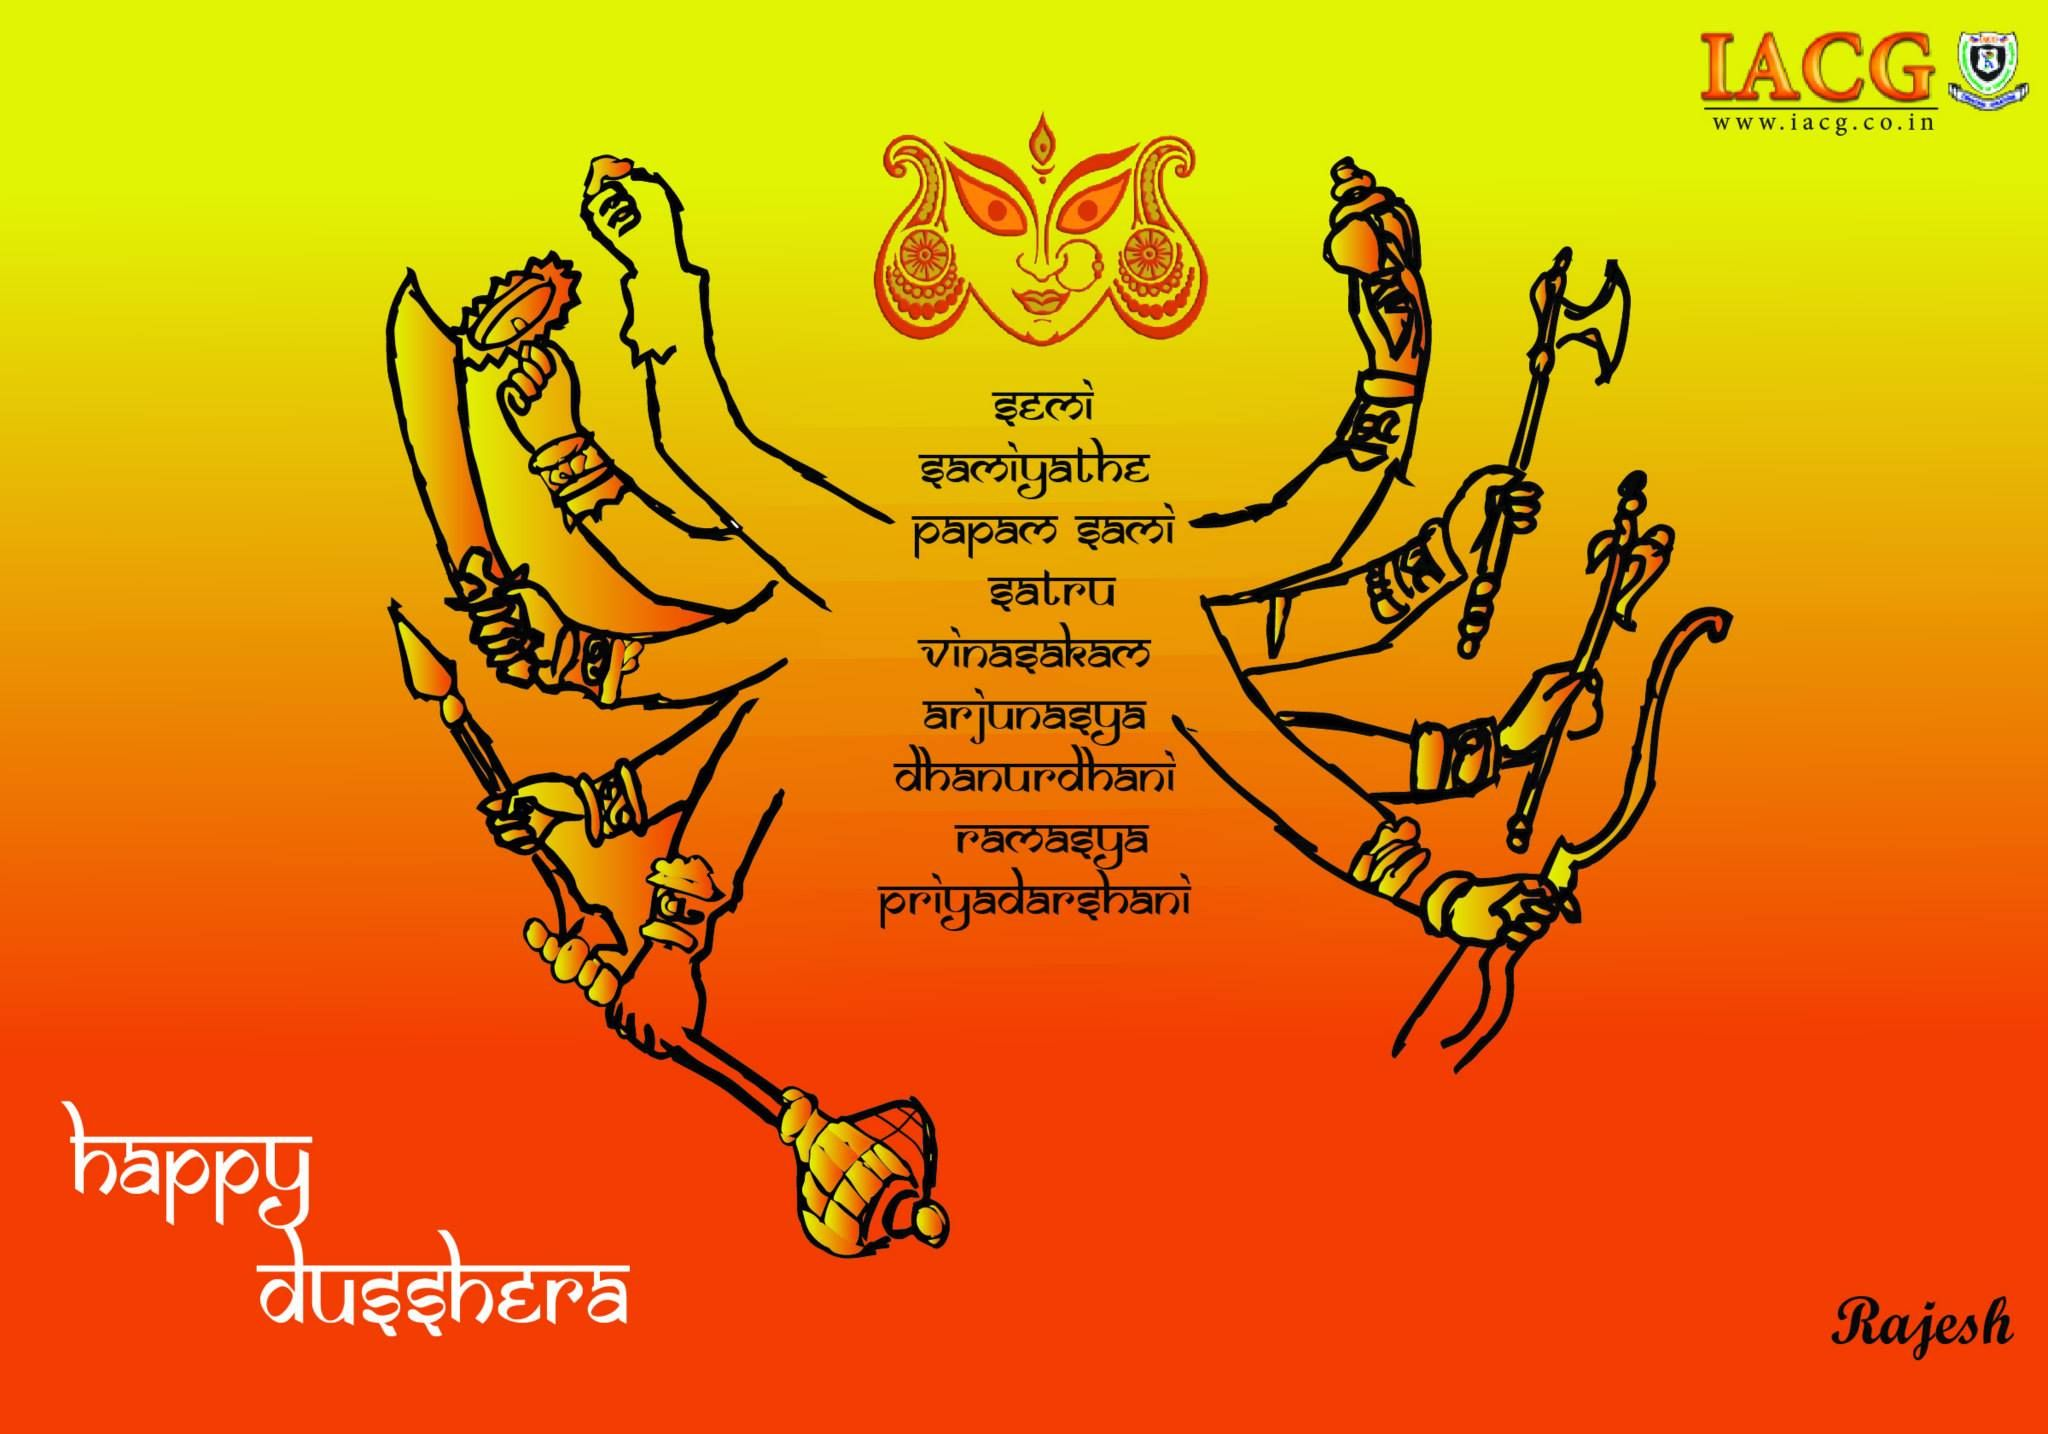 Dussehra greeting cards done by iacg students dusshera greeting dussehra greeting cards done by iacg students dussehra greetings durga maa festivals greeting m4hsunfo